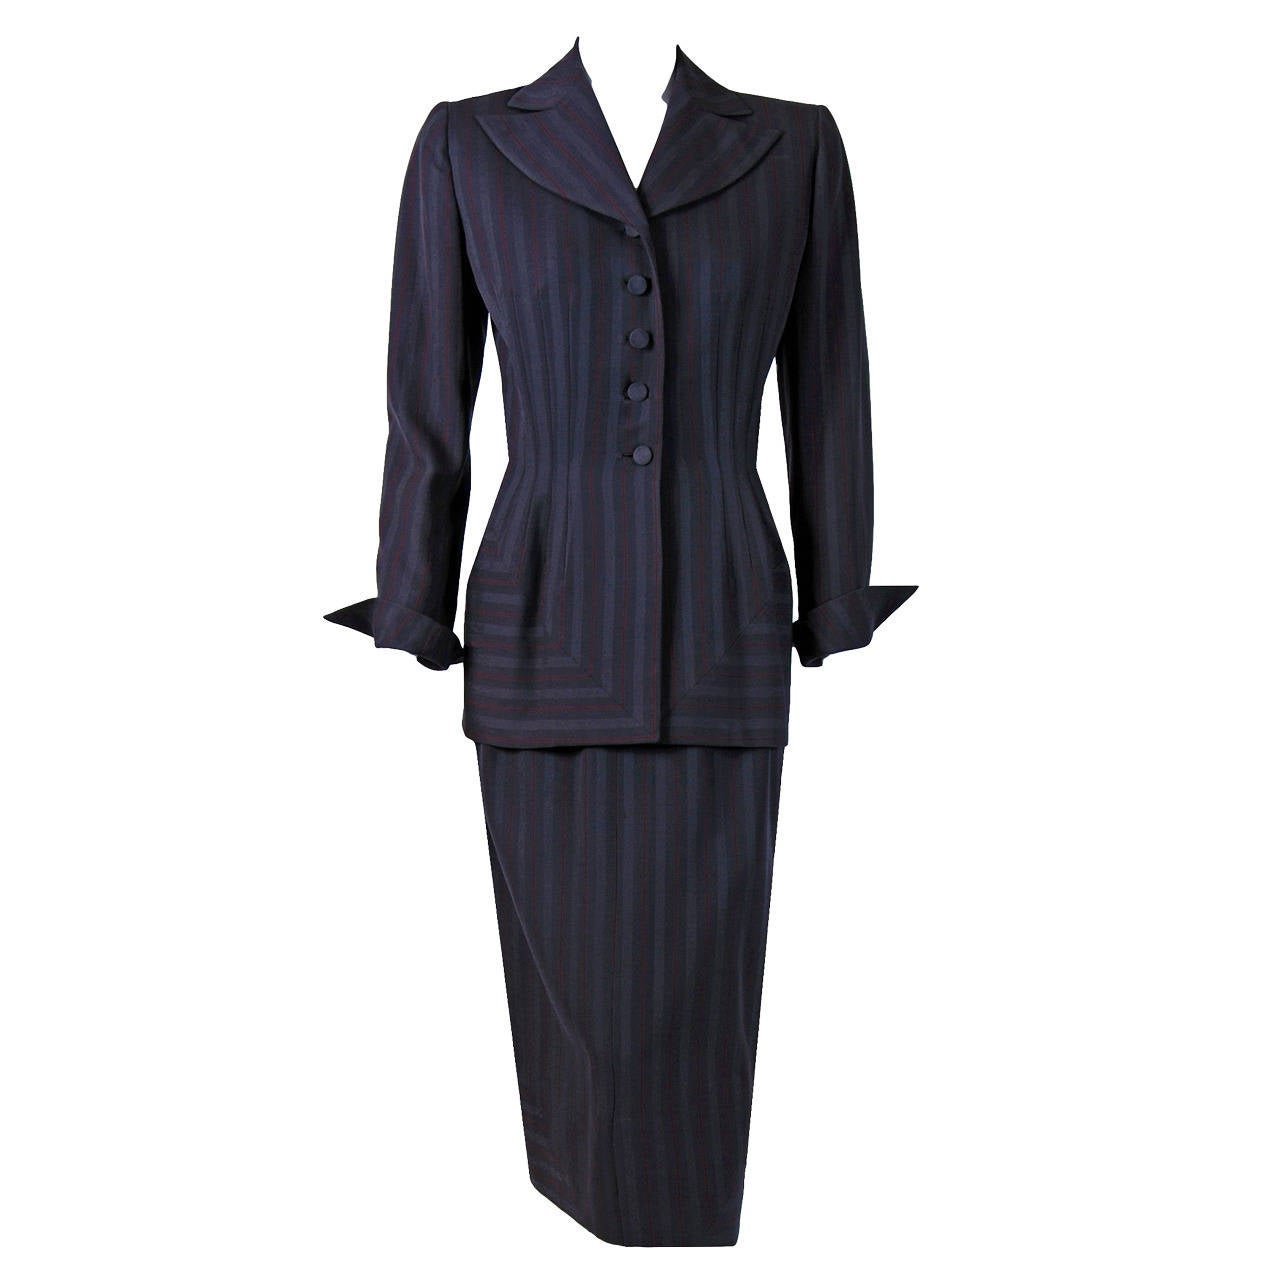 1940's Irene Grey Pinstripe Wool-Gabardine Deco Hourglass Jacket & Skirt Suit 1